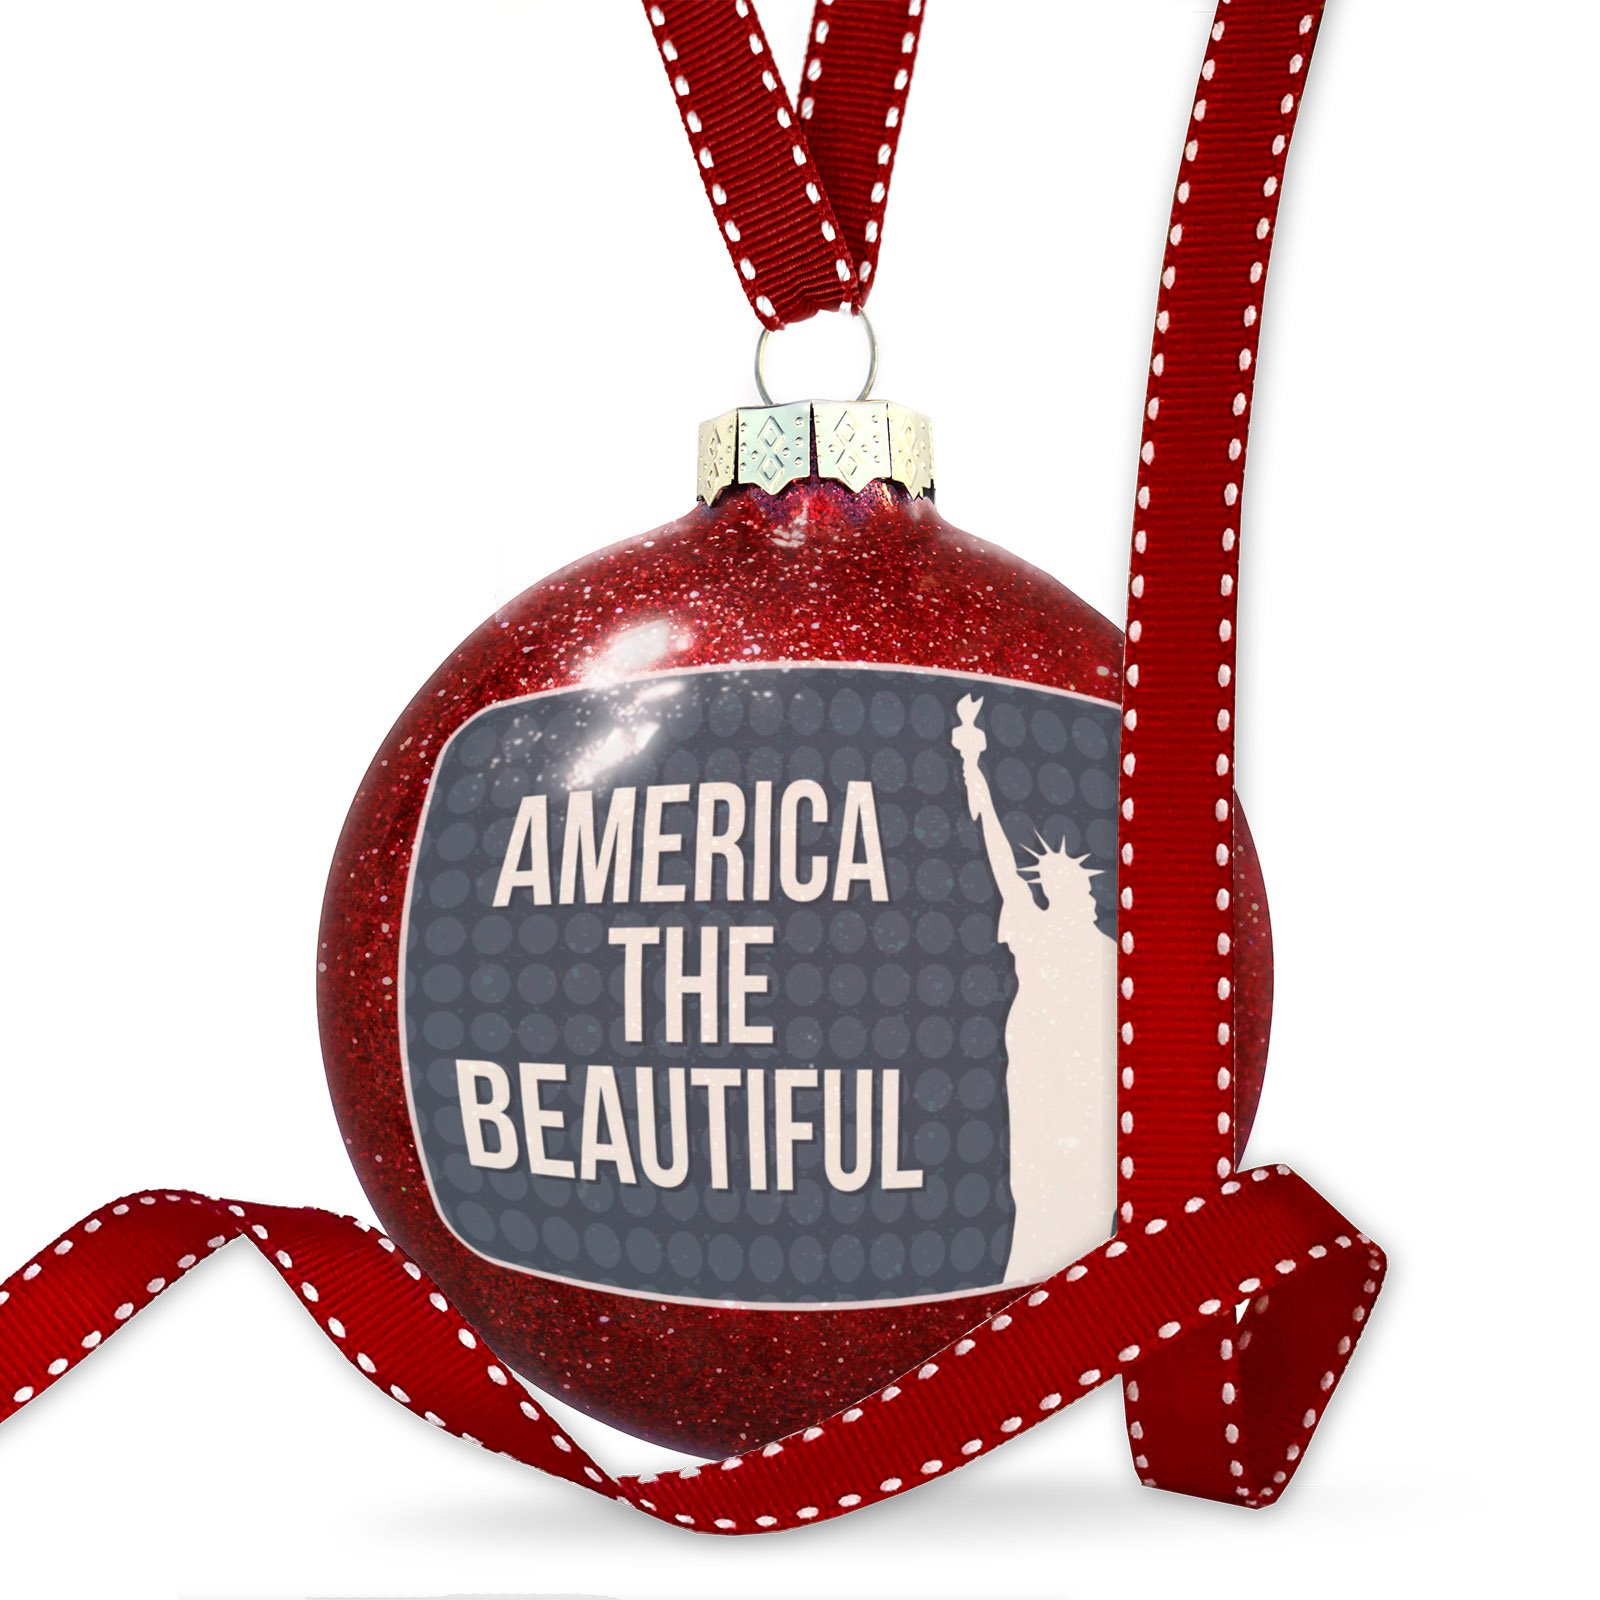 Christmas Decoration America the Beautiful Fourth of July Lady Liberty Ornament by NEONBLOND (Image #1)